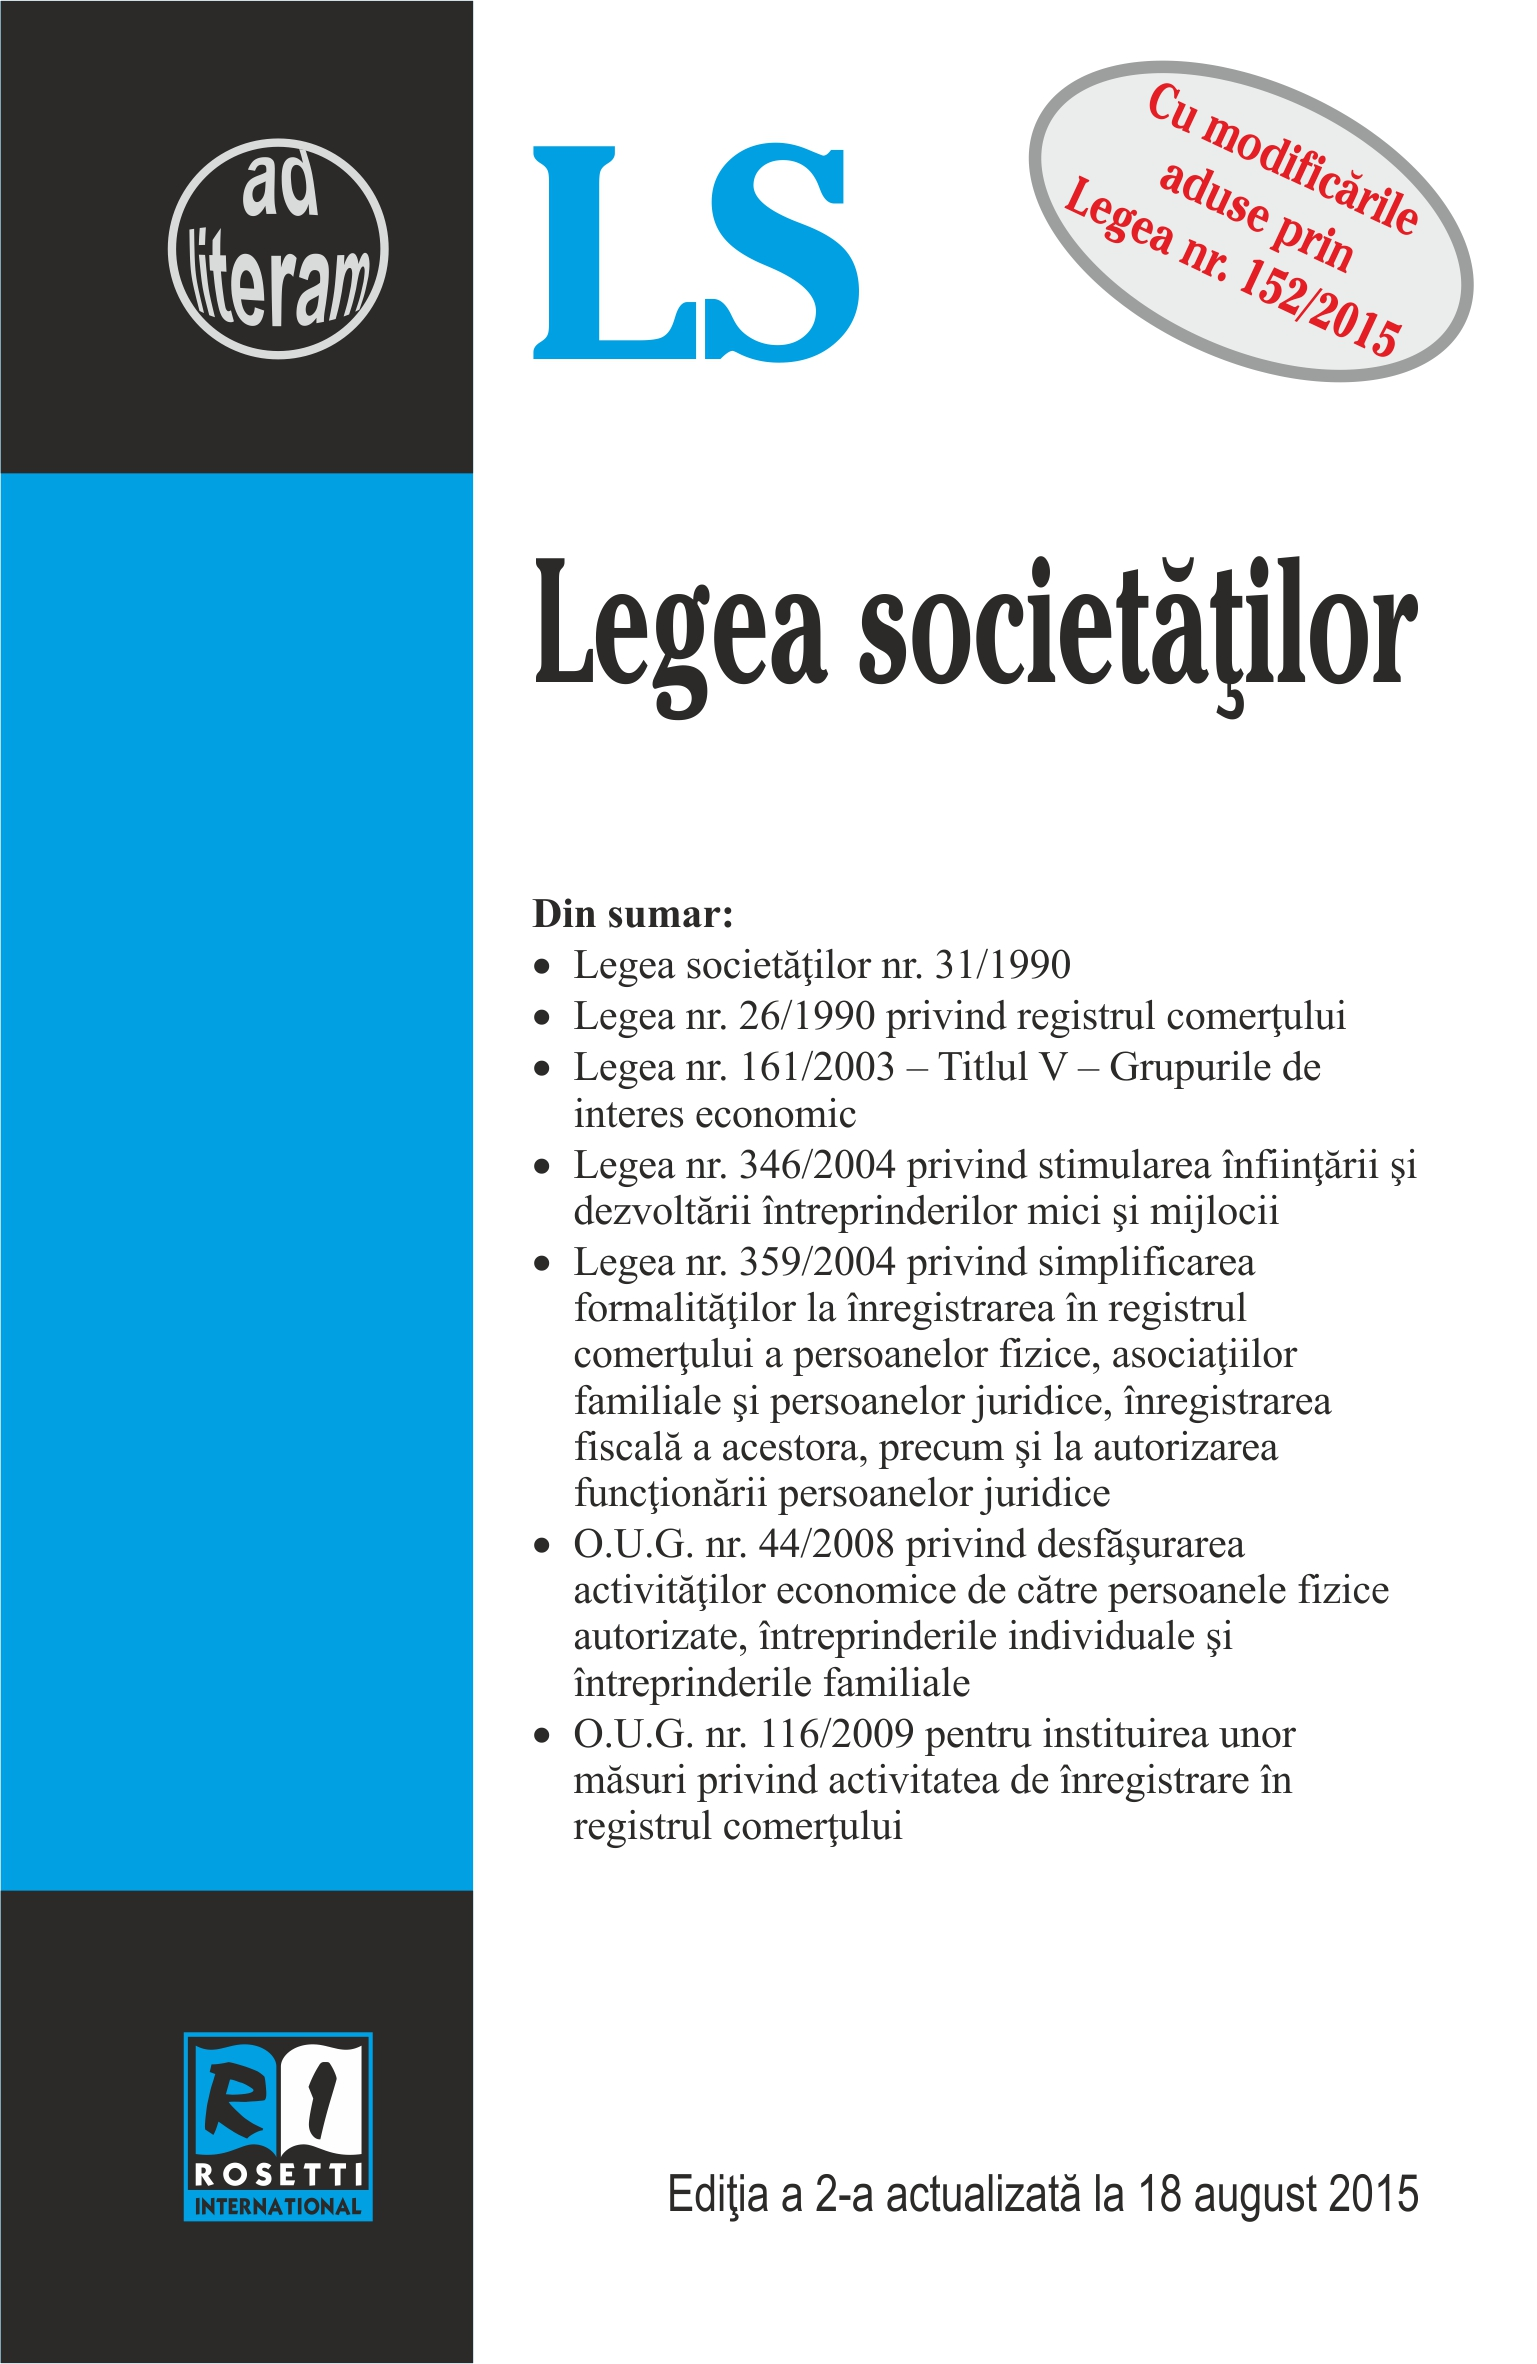 Legea Societatilor Act. 18 August 2015 thumbnail